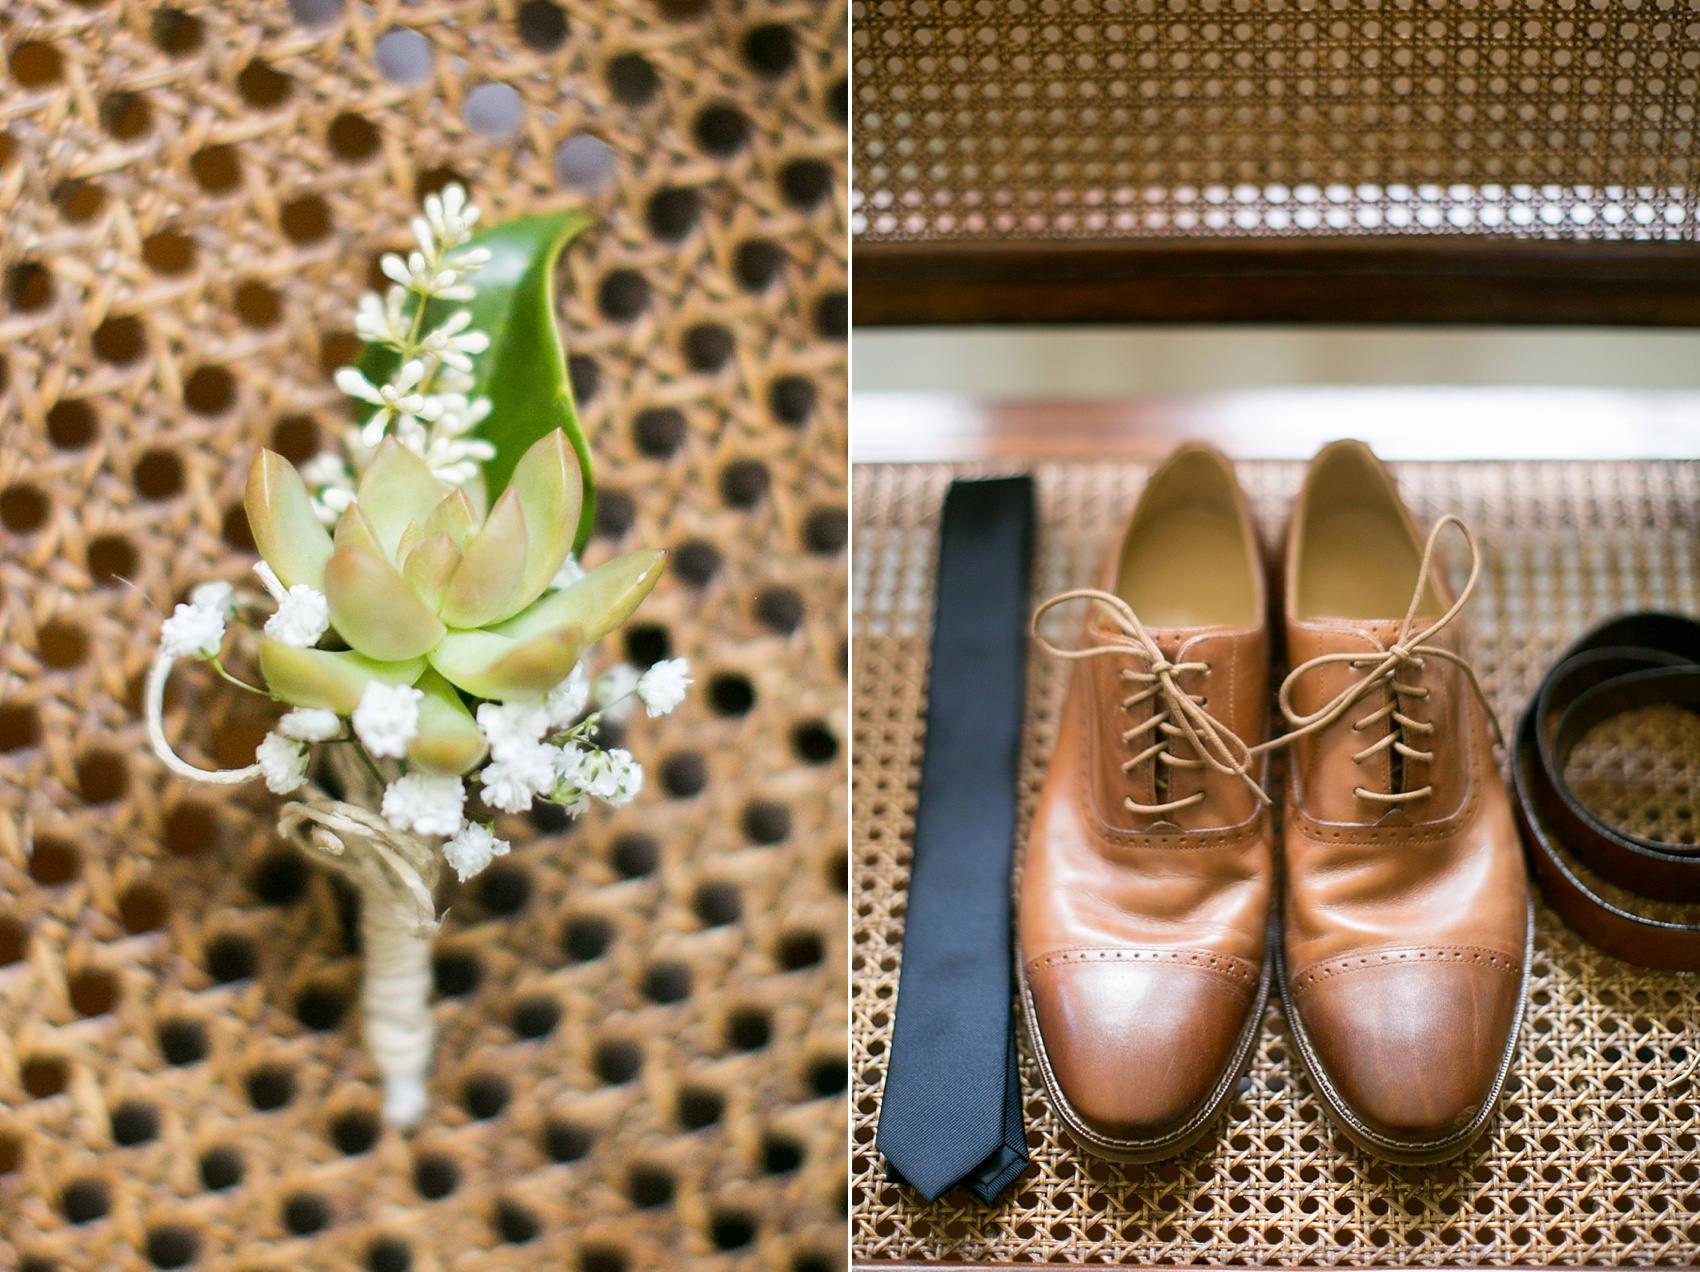 Groom details for a southern wedding - photos by Mikkel Paige in Hilton Head, Haig Point, South Carolina. Brown leather shoes and a succulent boutonniere.